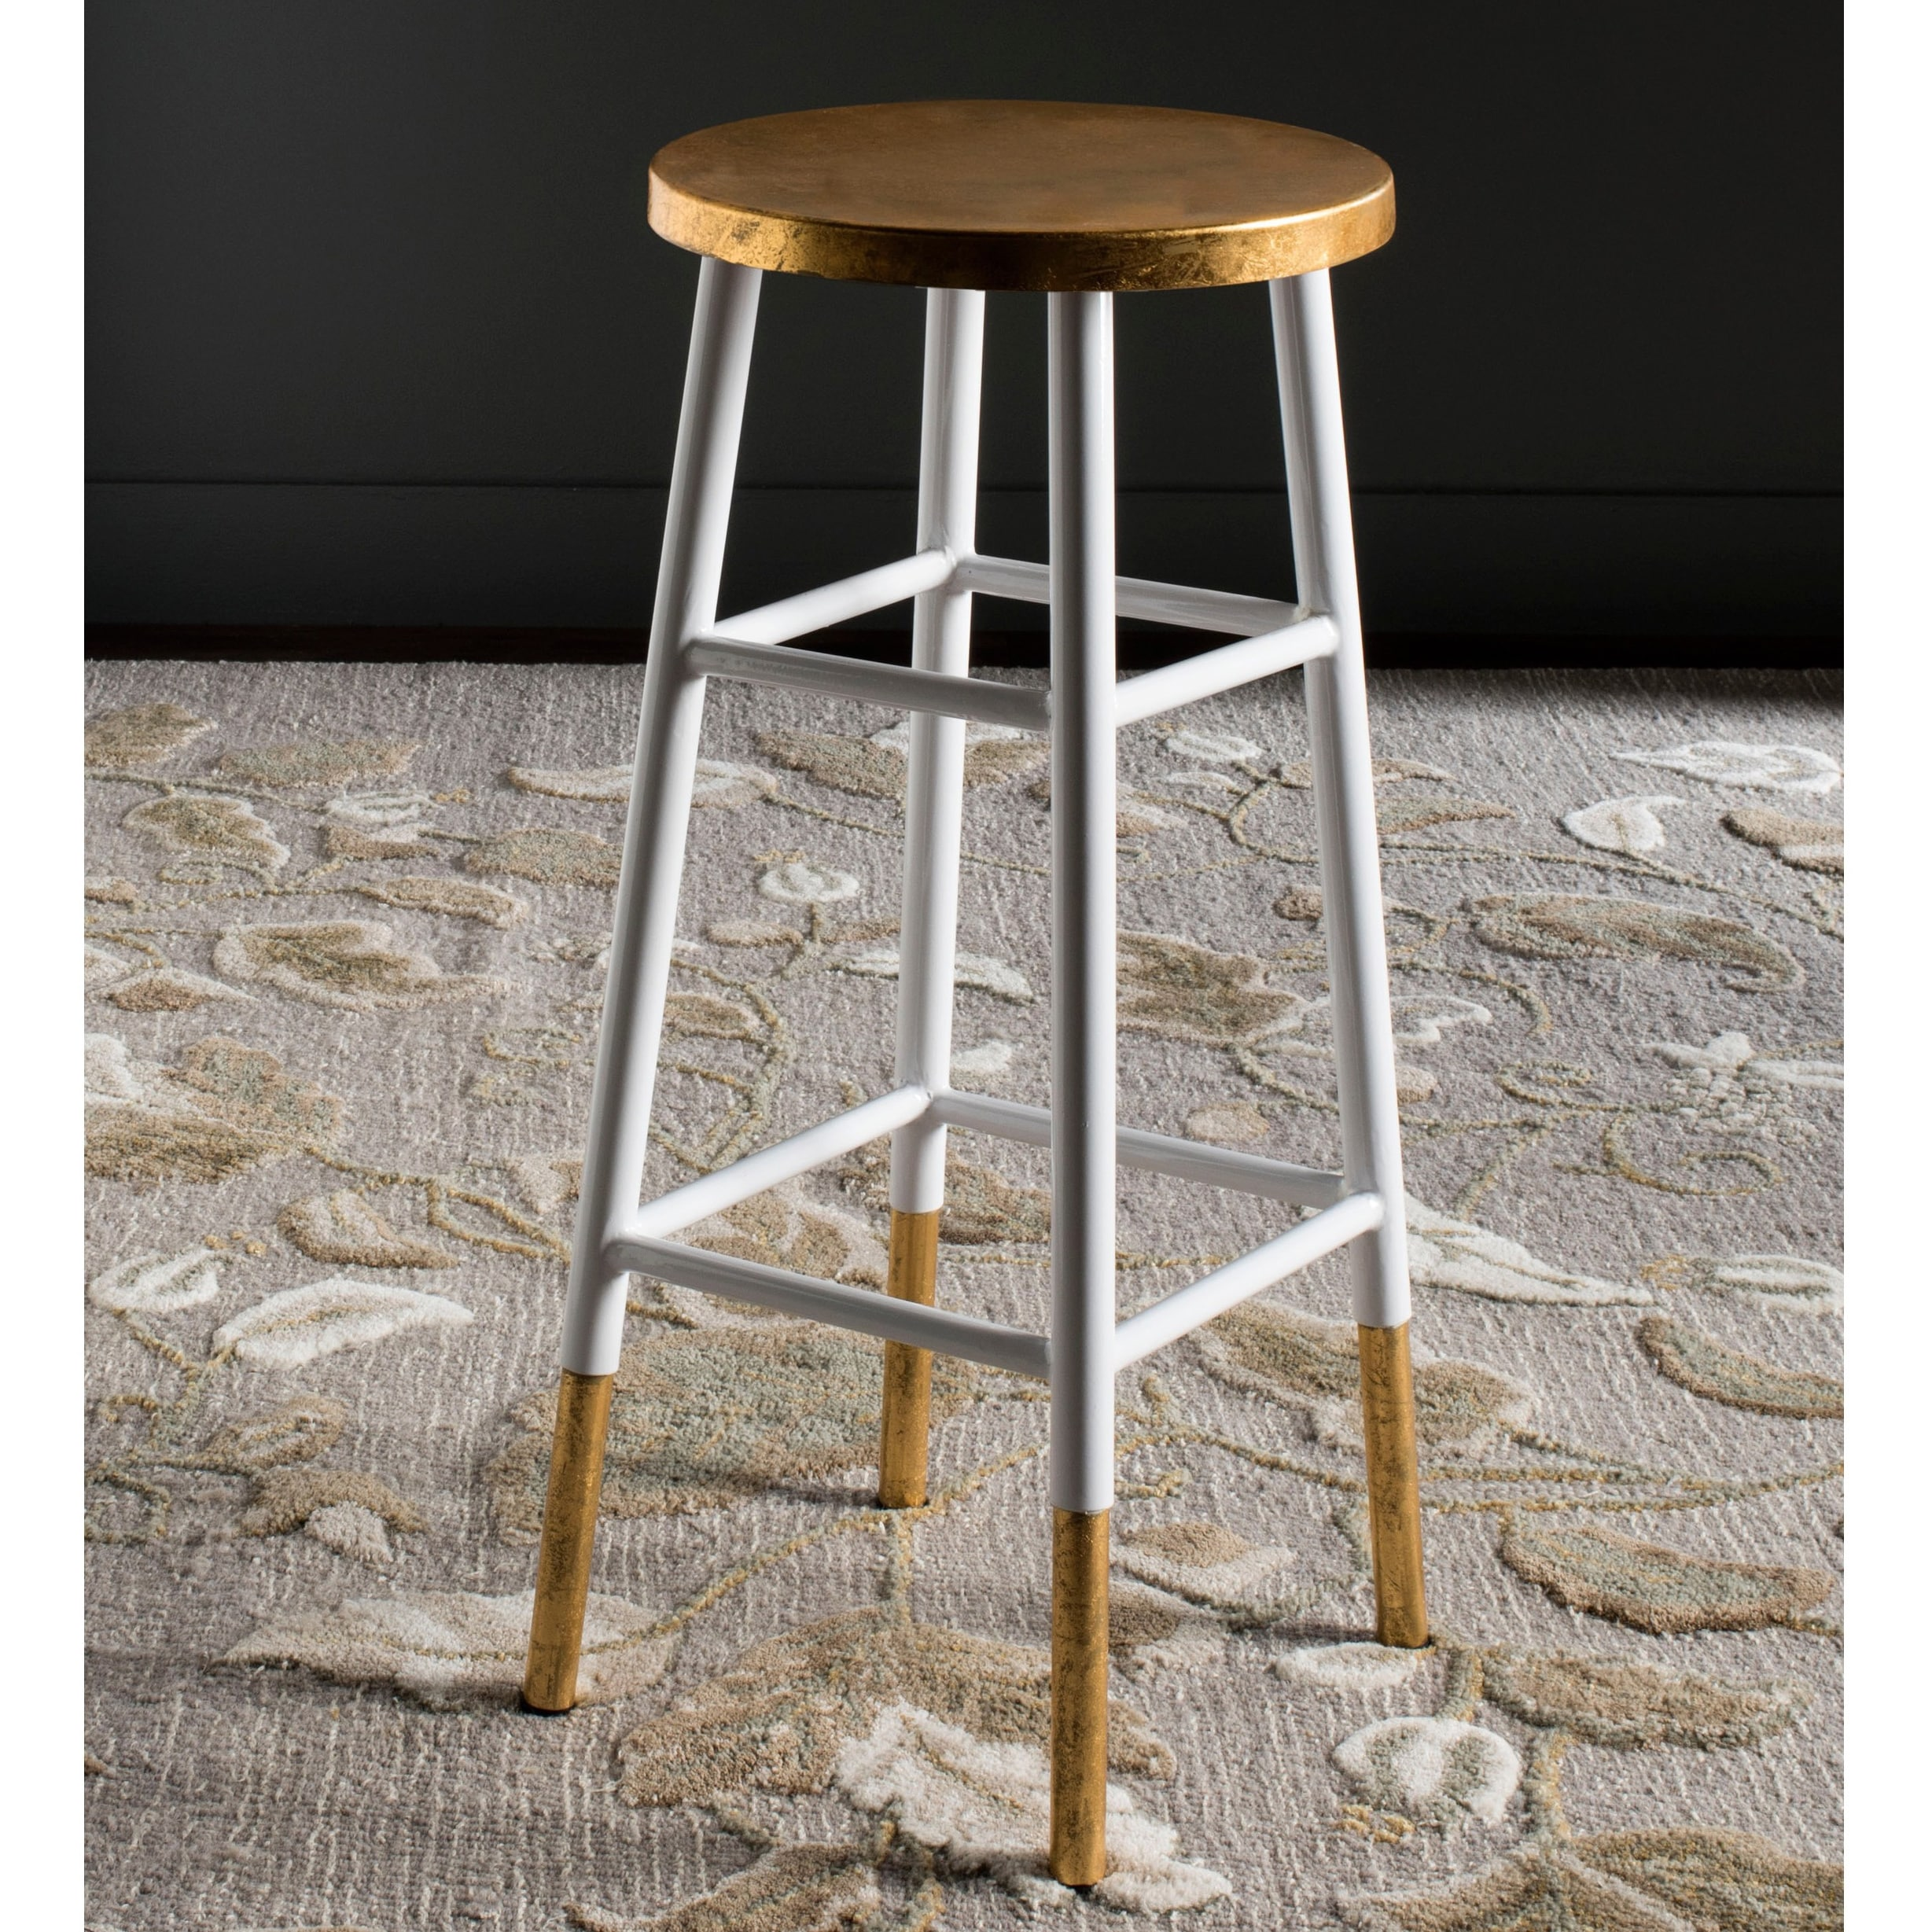 Magnificent Safavieh 30 Inch Emery White Gold Bar Stool 13 5 X 13 5 X 30 Andrewgaddart Wooden Chair Designs For Living Room Andrewgaddartcom